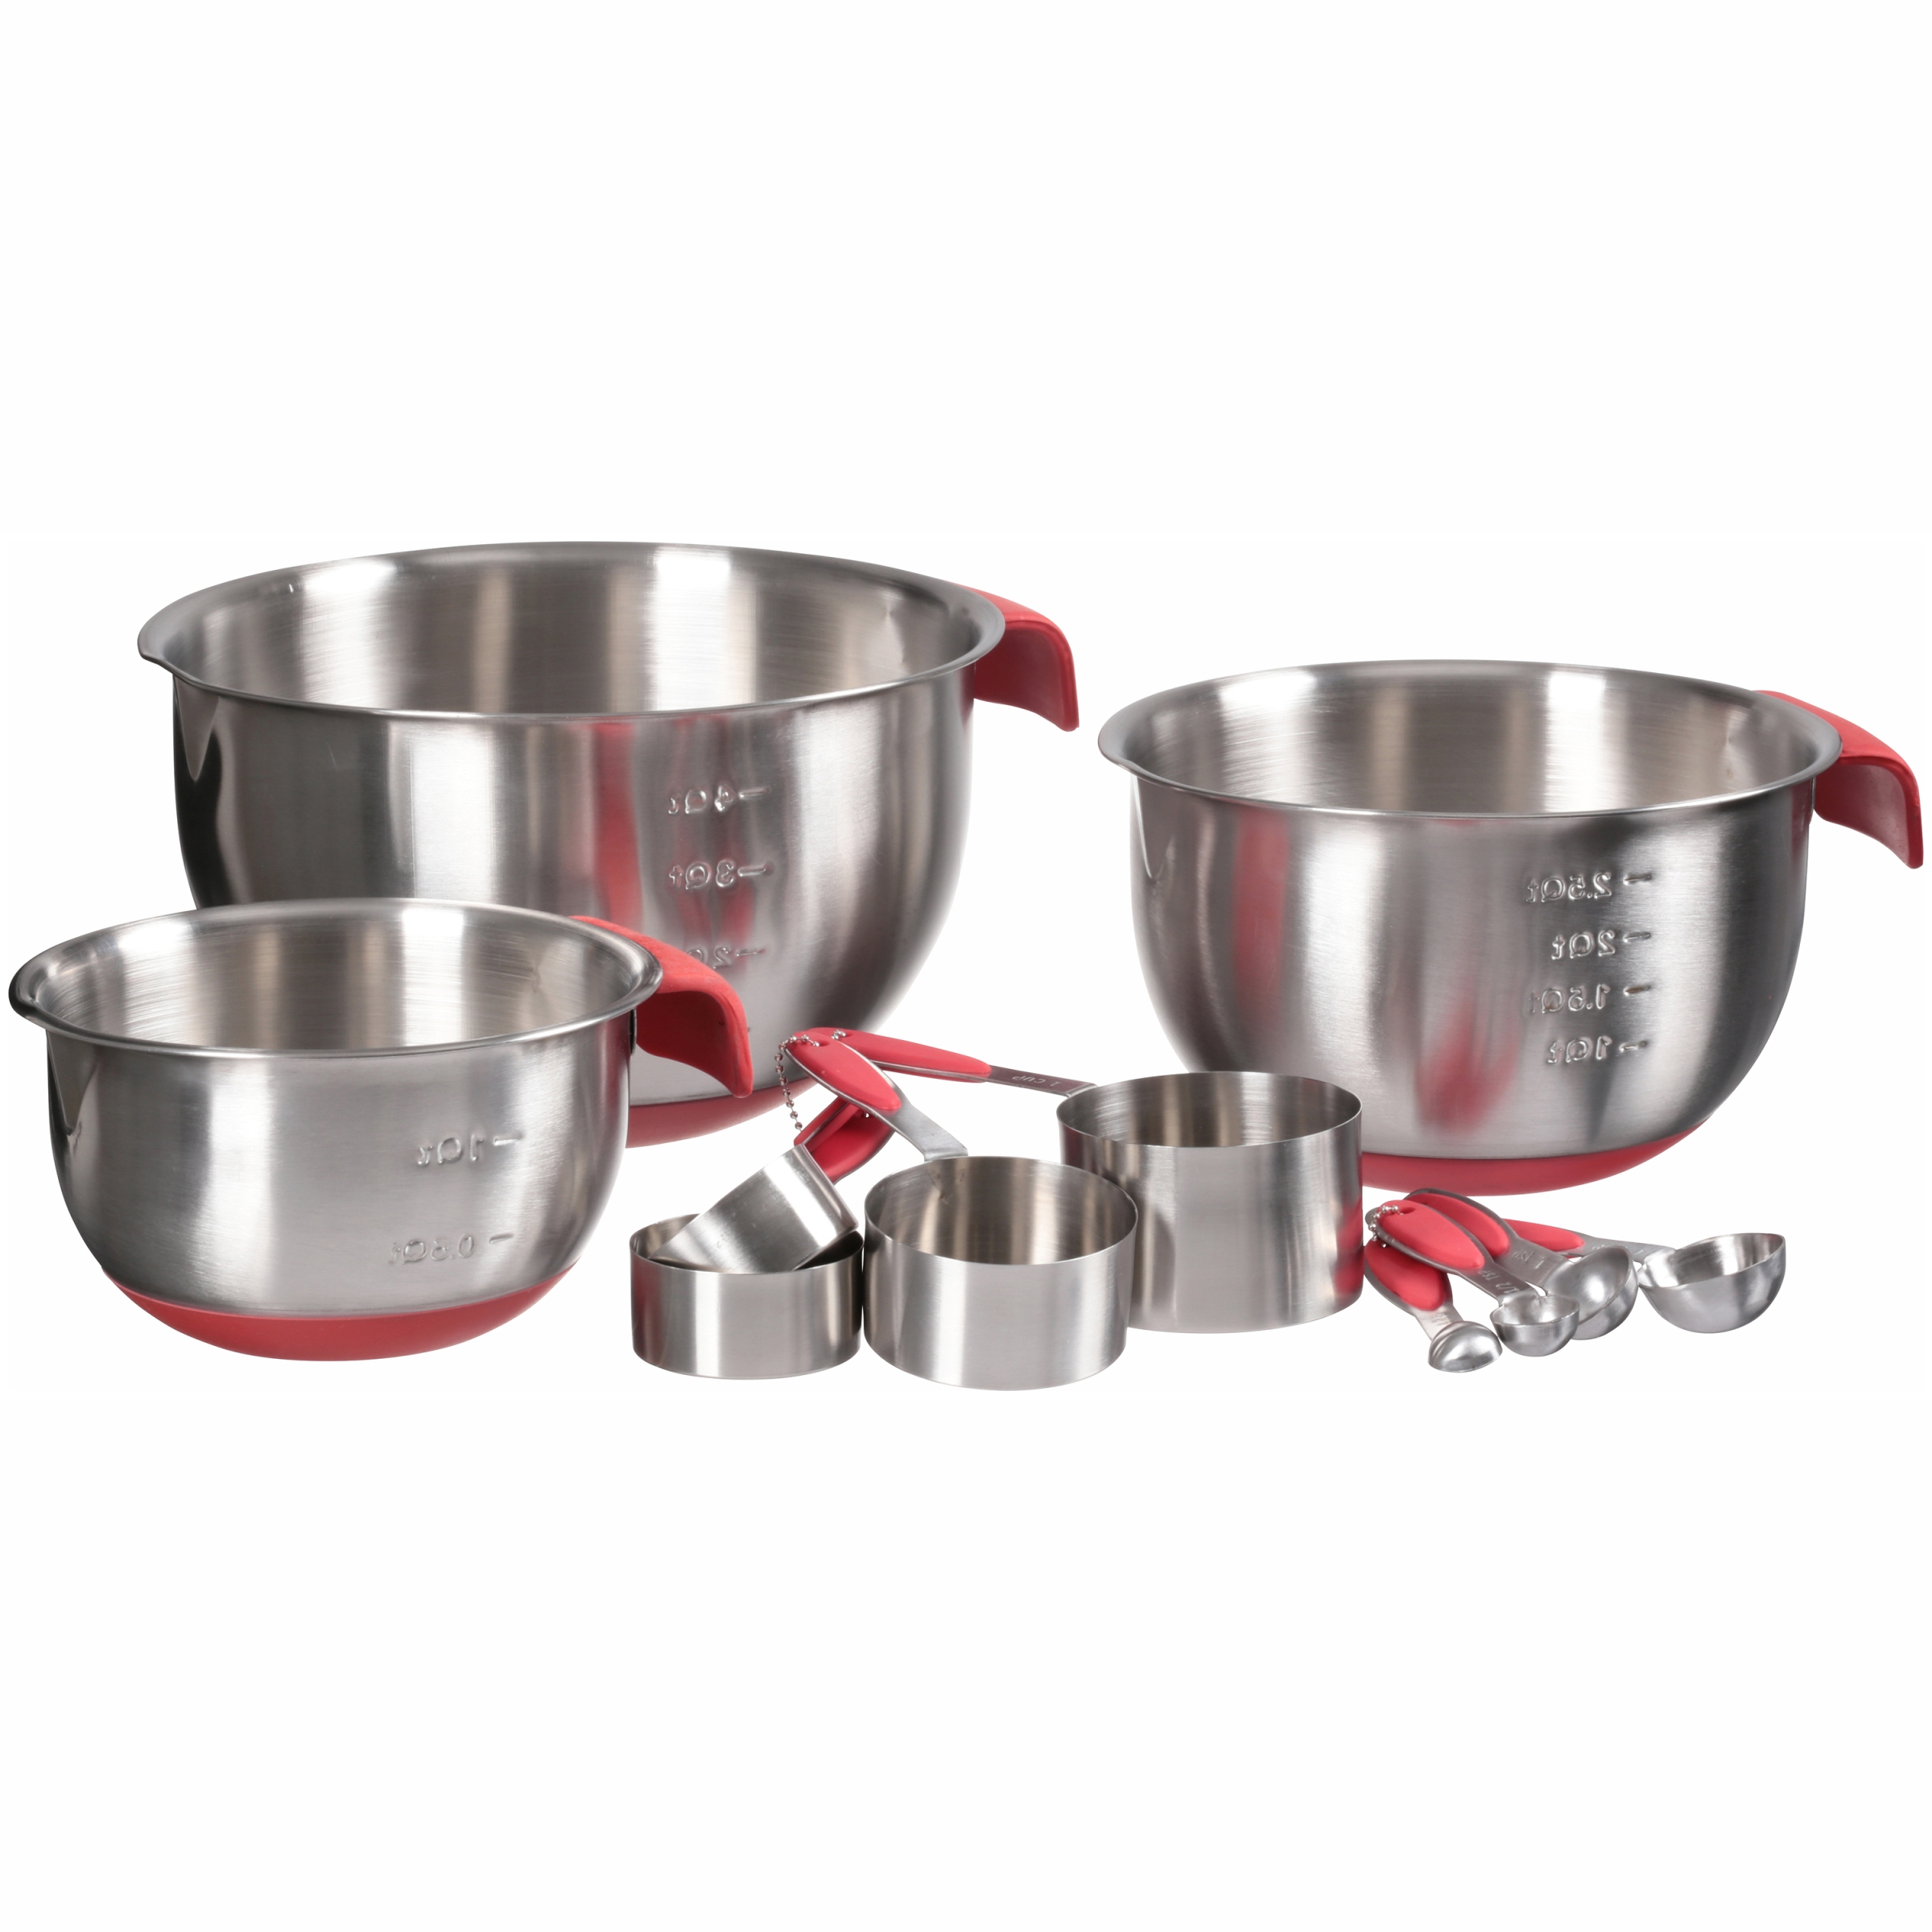 White Apron Stainless Kitchen Set Steel Bowls, Measuring Cups, & Measuring Spoons Variety Pack 11 pc Box